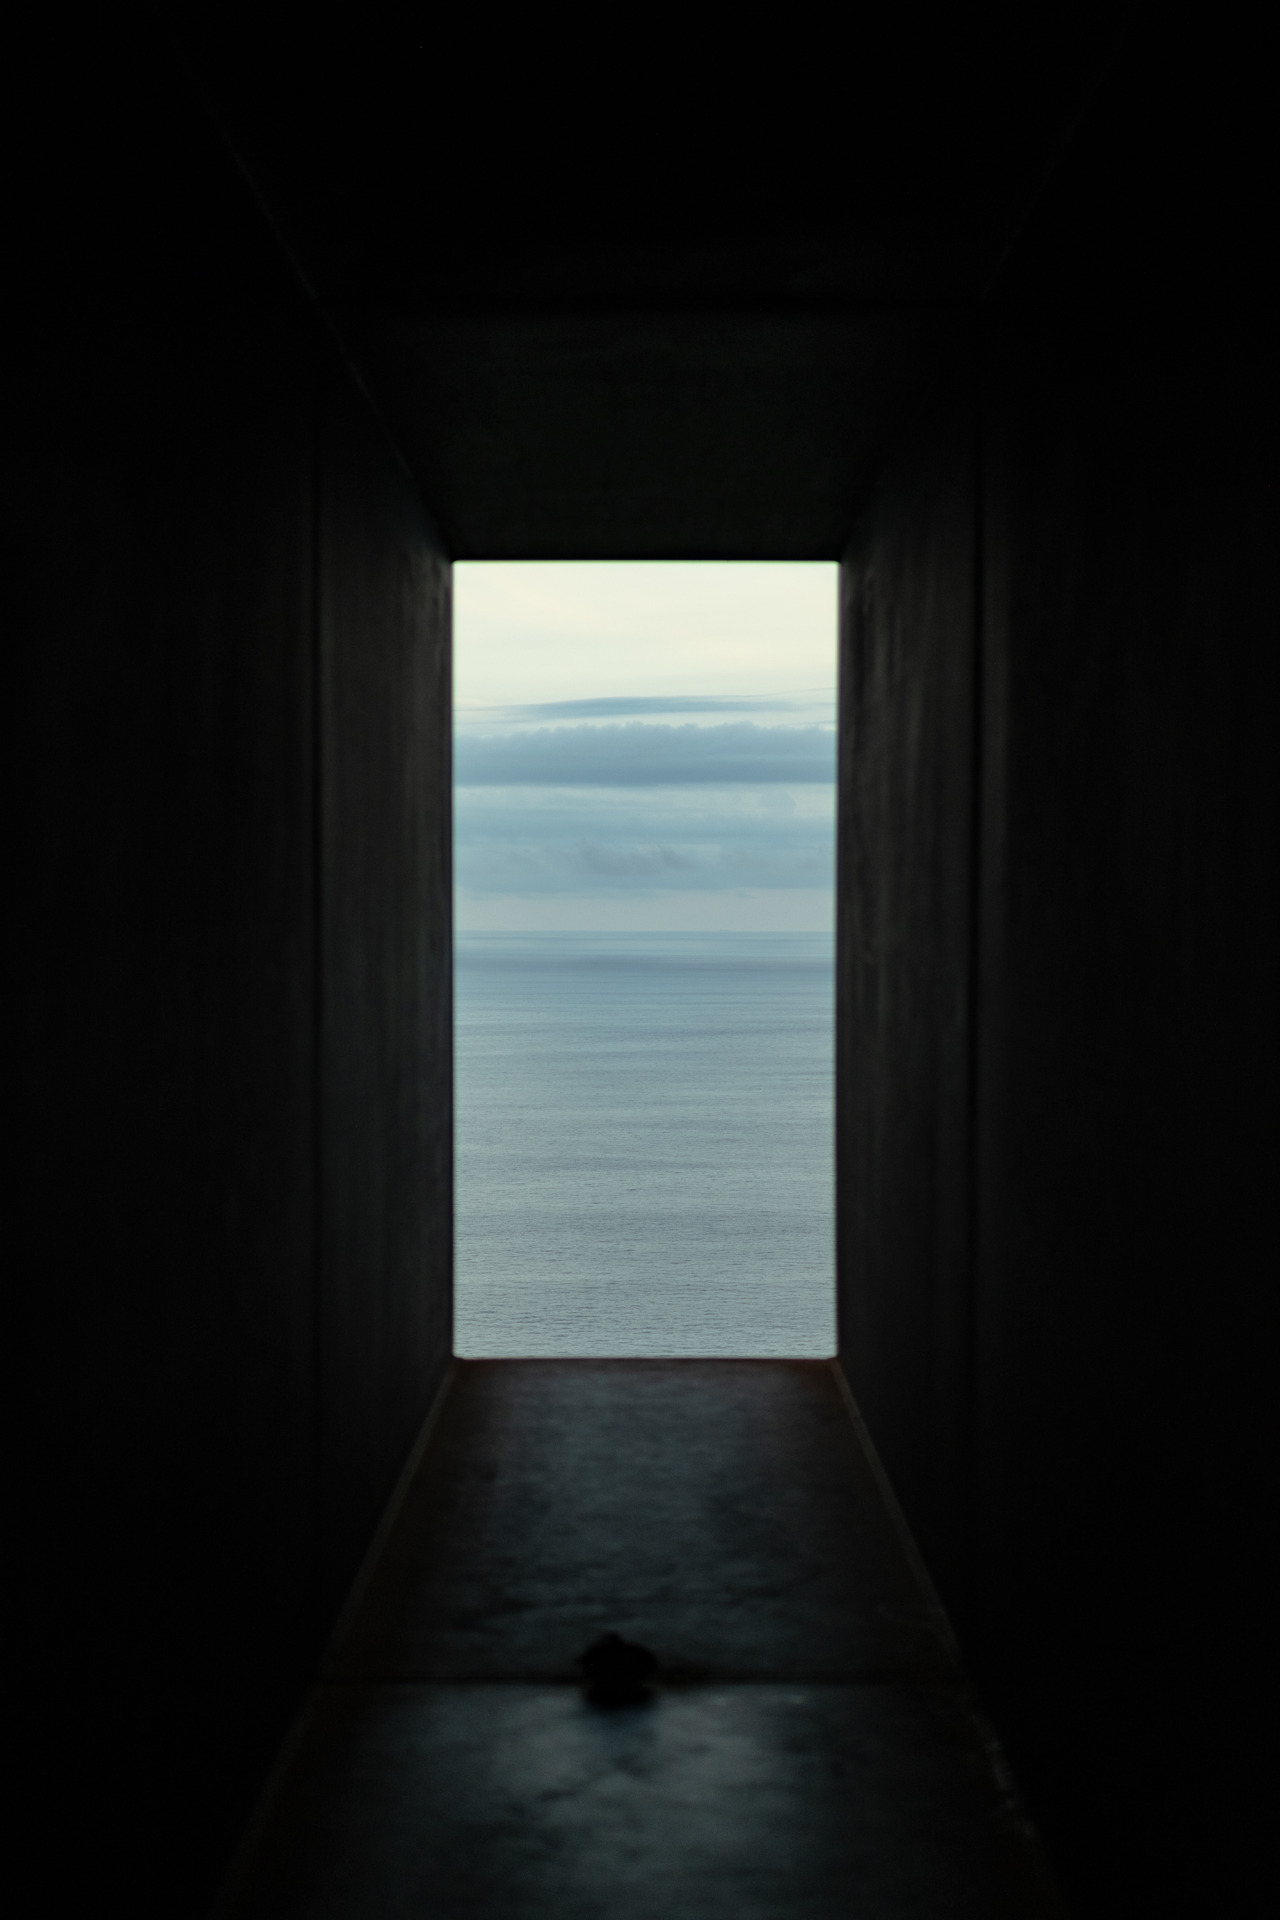 A view of the blue ocean is framed by a dark tunnel